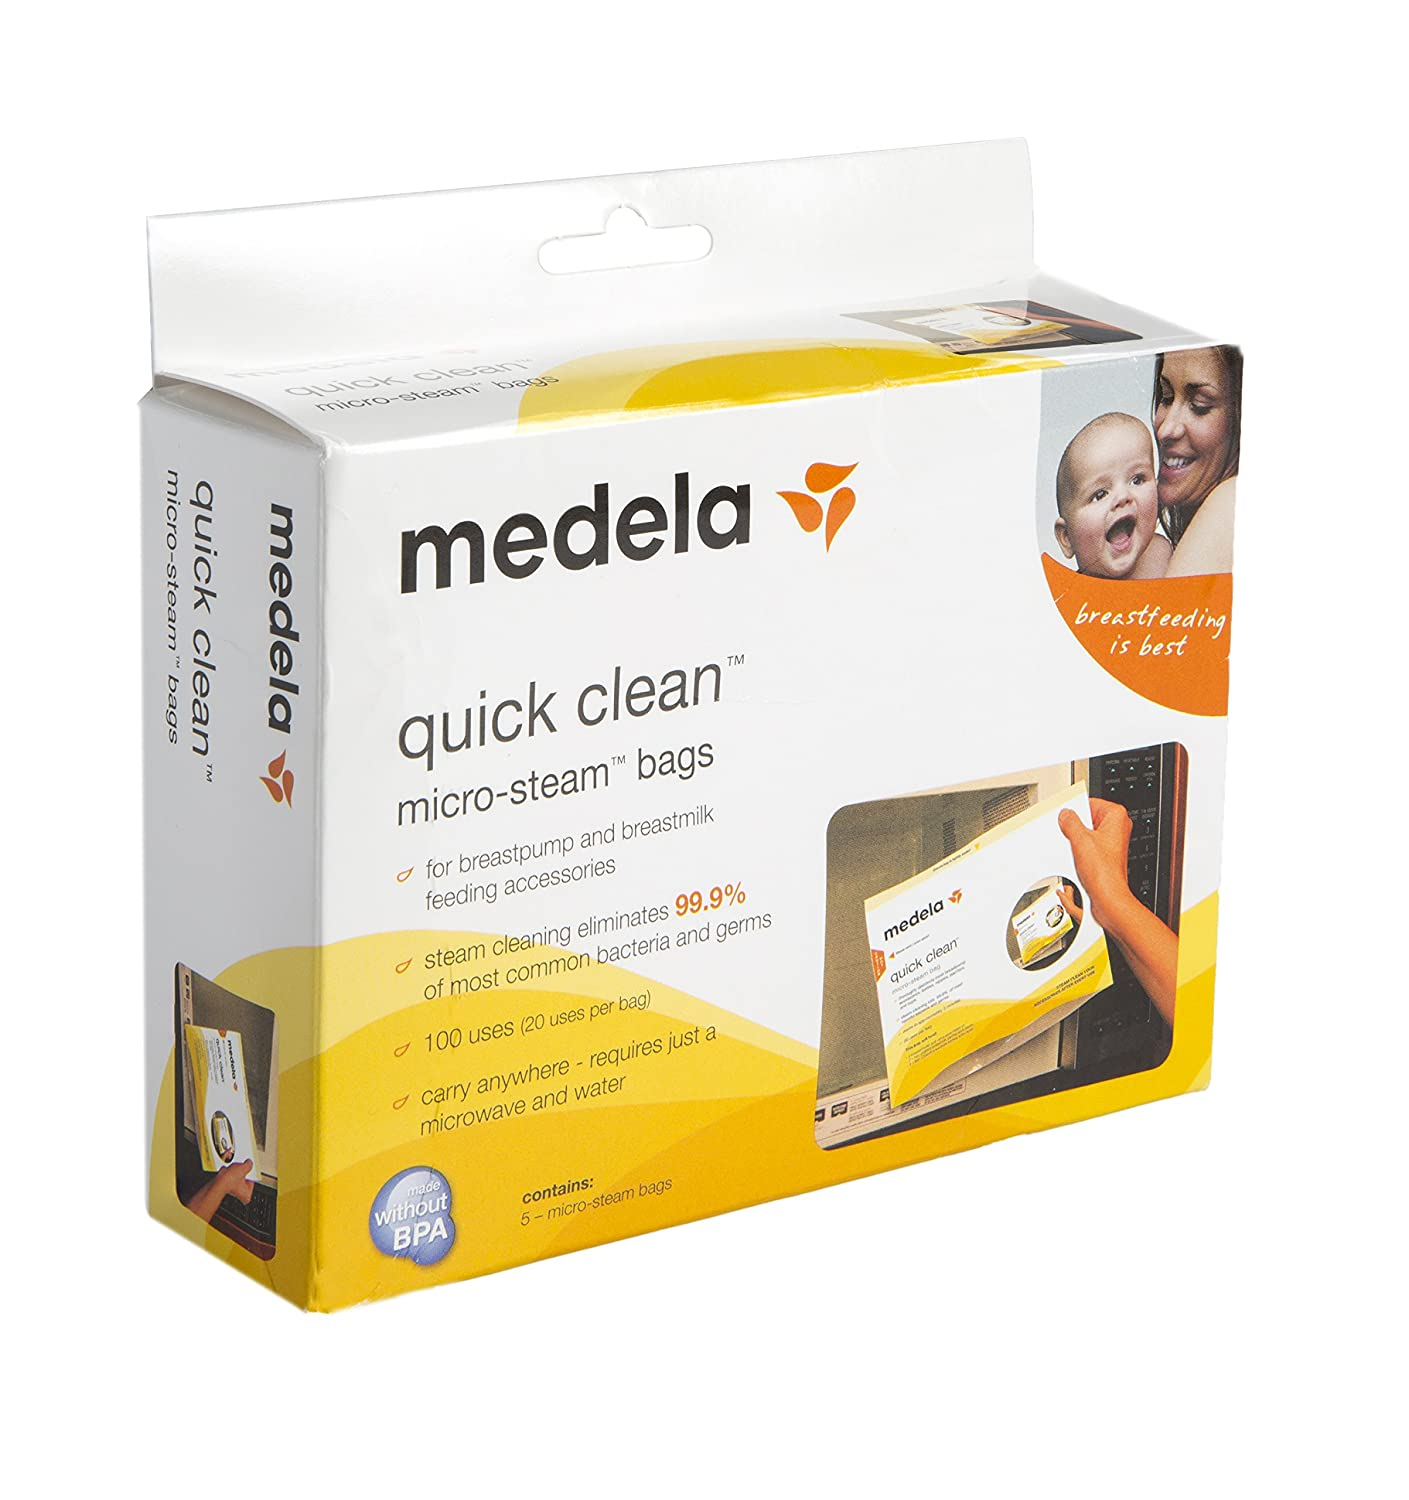 Medela Quick Clean Micro Steam Bags, 15 Count, Steam Bags for Bottles and Breast Pump Parts, Disinfects Most Breast Pump Accessories